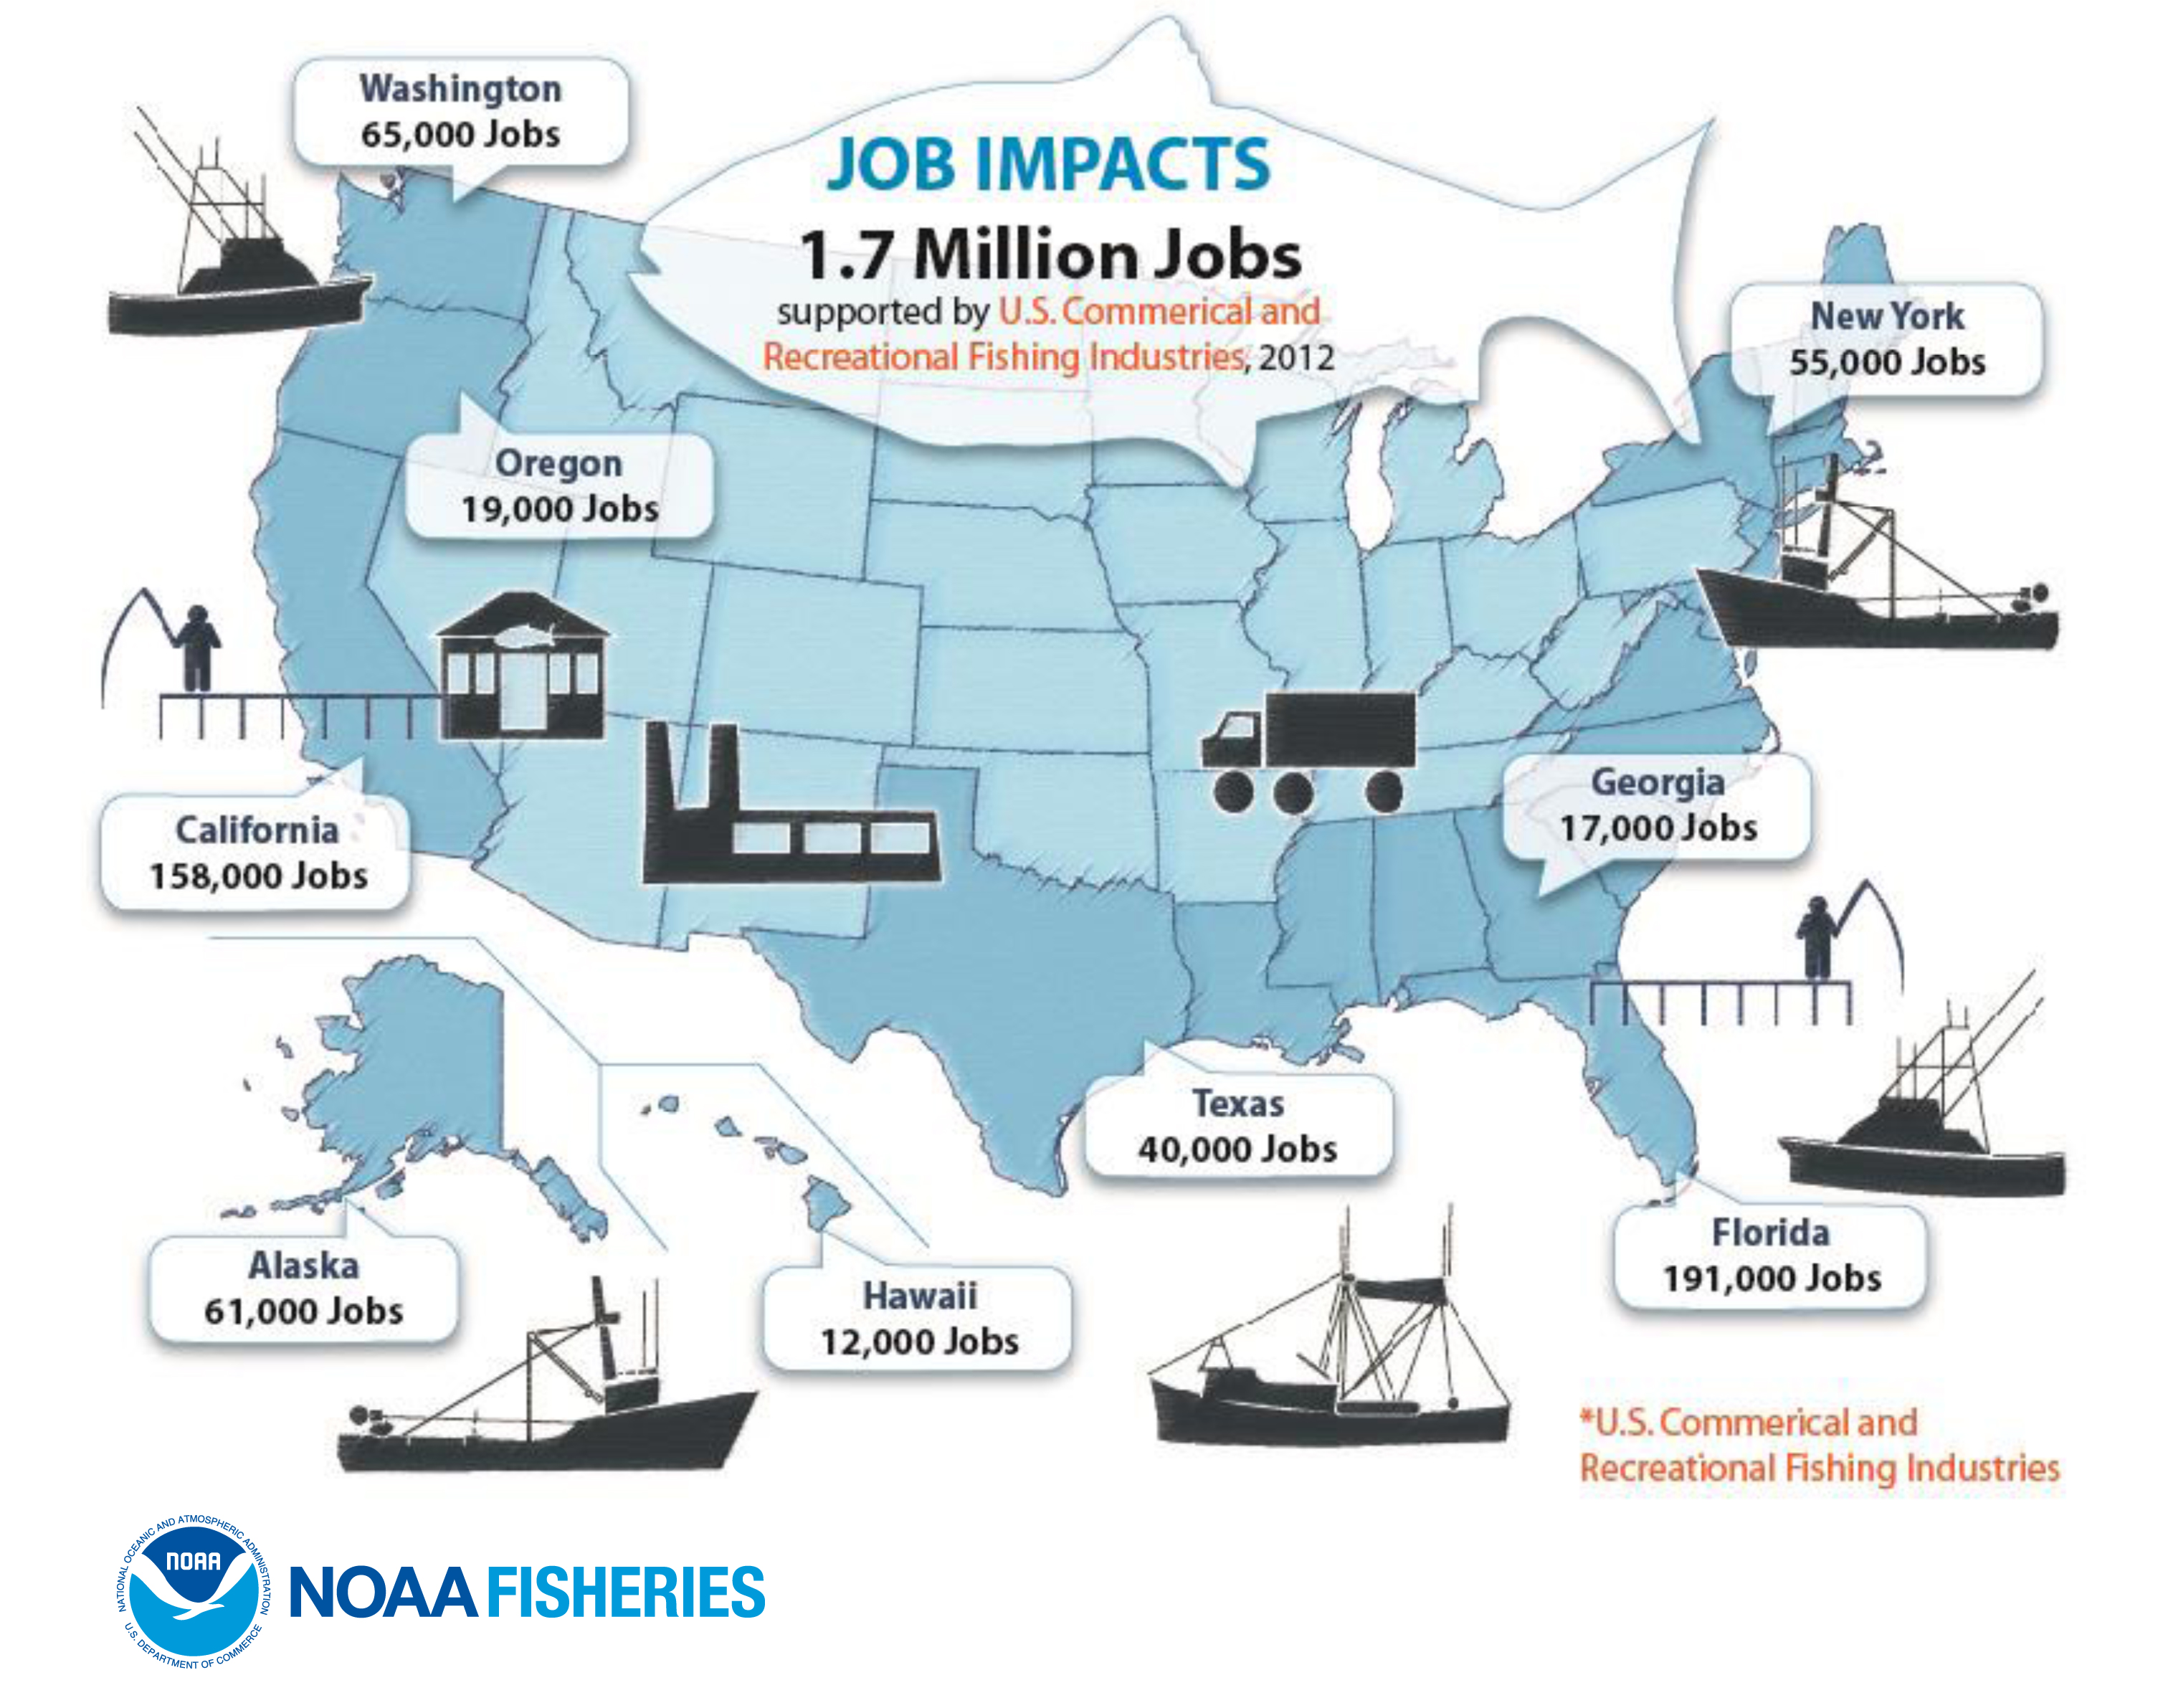 blog entries from department of commerce 1 7 million jobs supported by u s commercial and recreational fishing industries in 2012